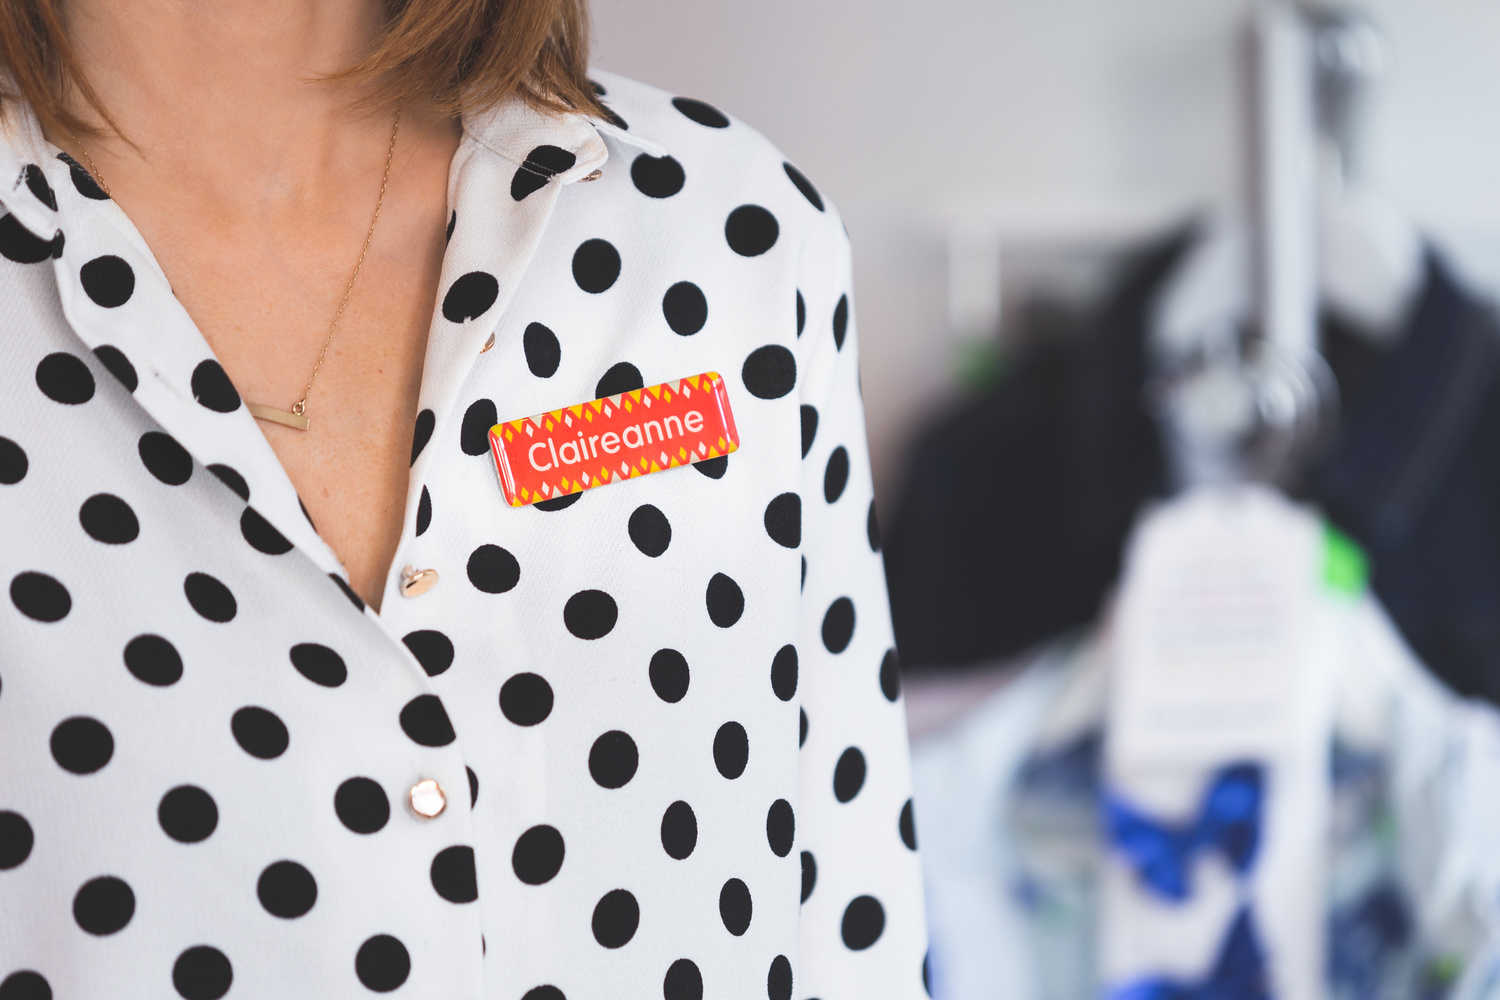 A retail employee wearing a black polka-dot blouse with a name tag